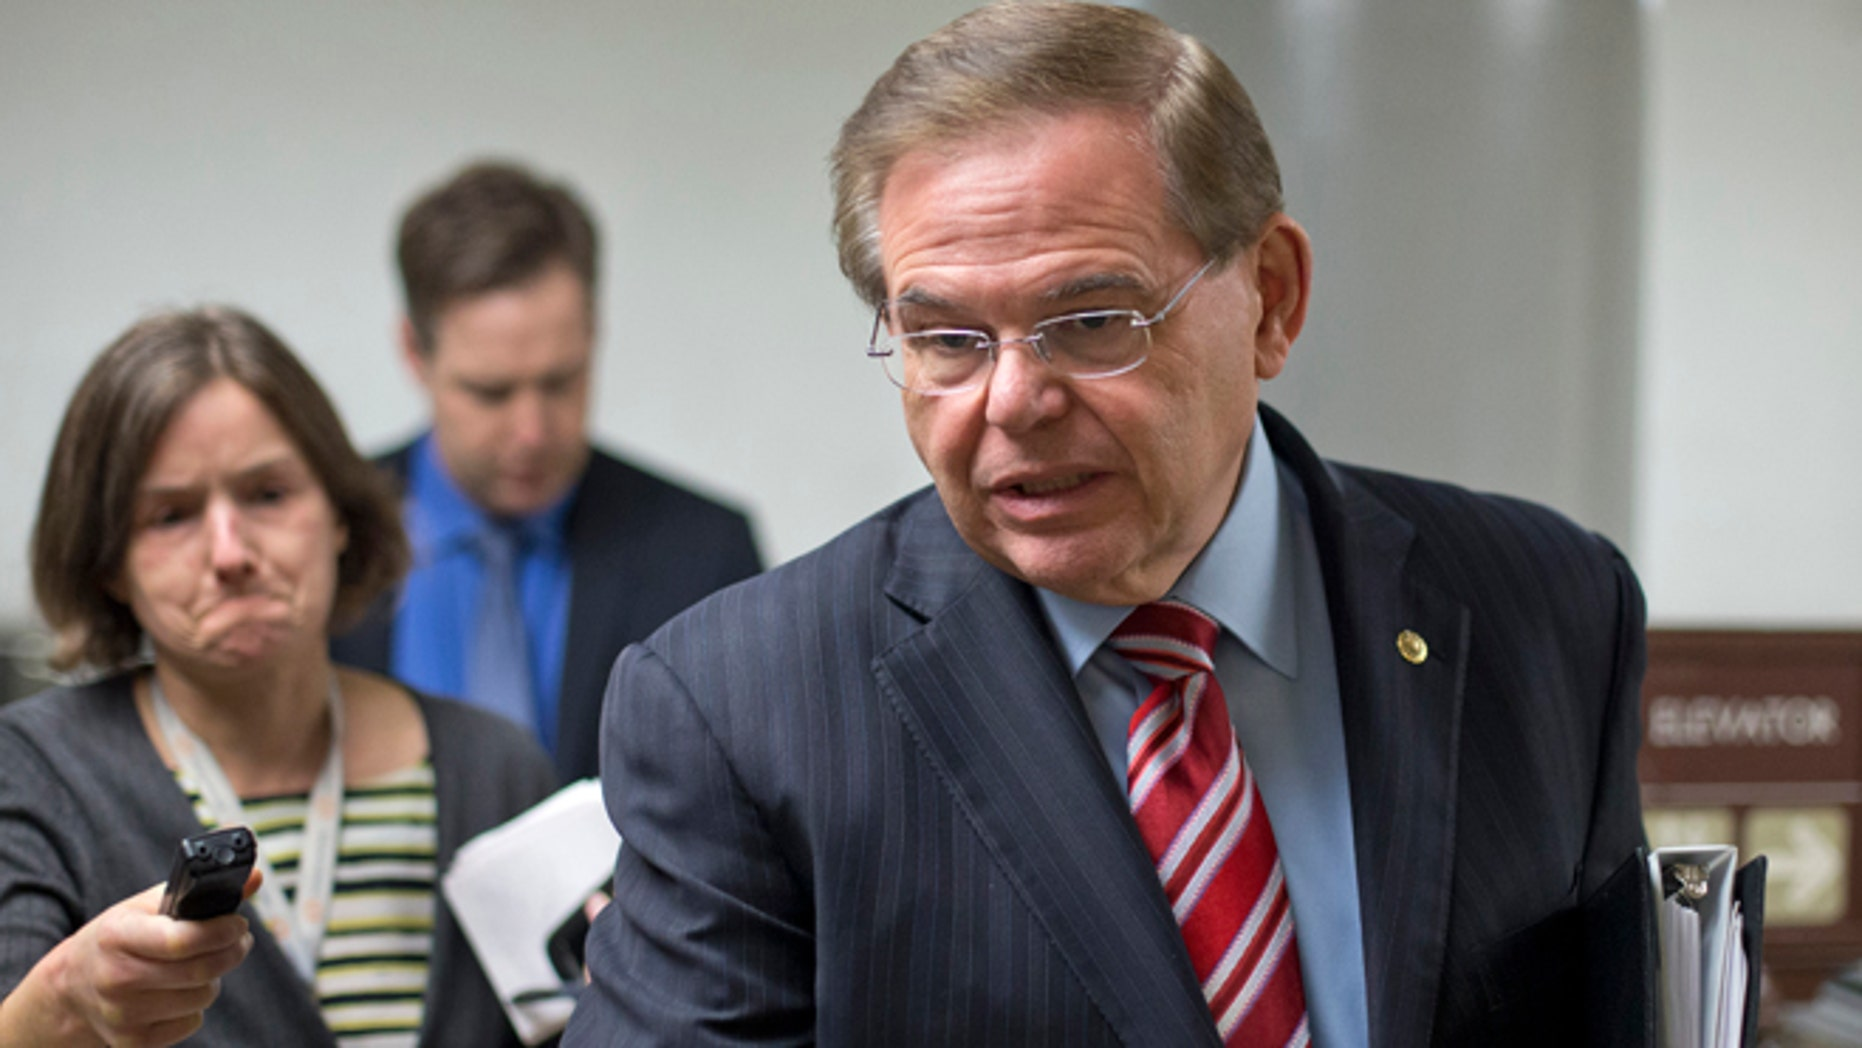 Sen. Bob Menendez, D-N.J., rushes through the Capitol on the way to the Senate Foreign Relations Committee, where he is taking over as chairman, replacing John Kerry, the new secretary of state, Wednesday, Feb. 13, 2013, on Capitol hill in Washington.  (AP Photo/J. Scott Applewhite)